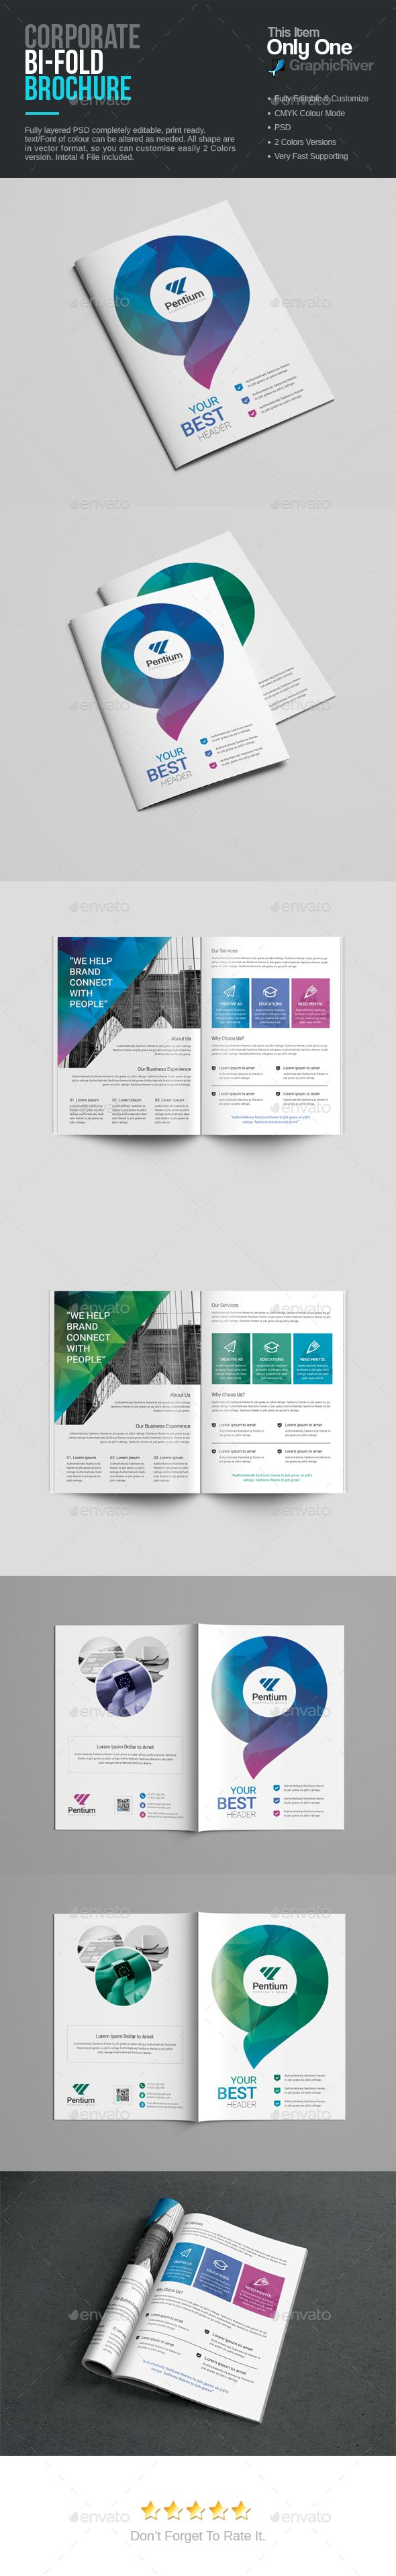 bifold brochure template - 1000 images about brochure templates on pinterest